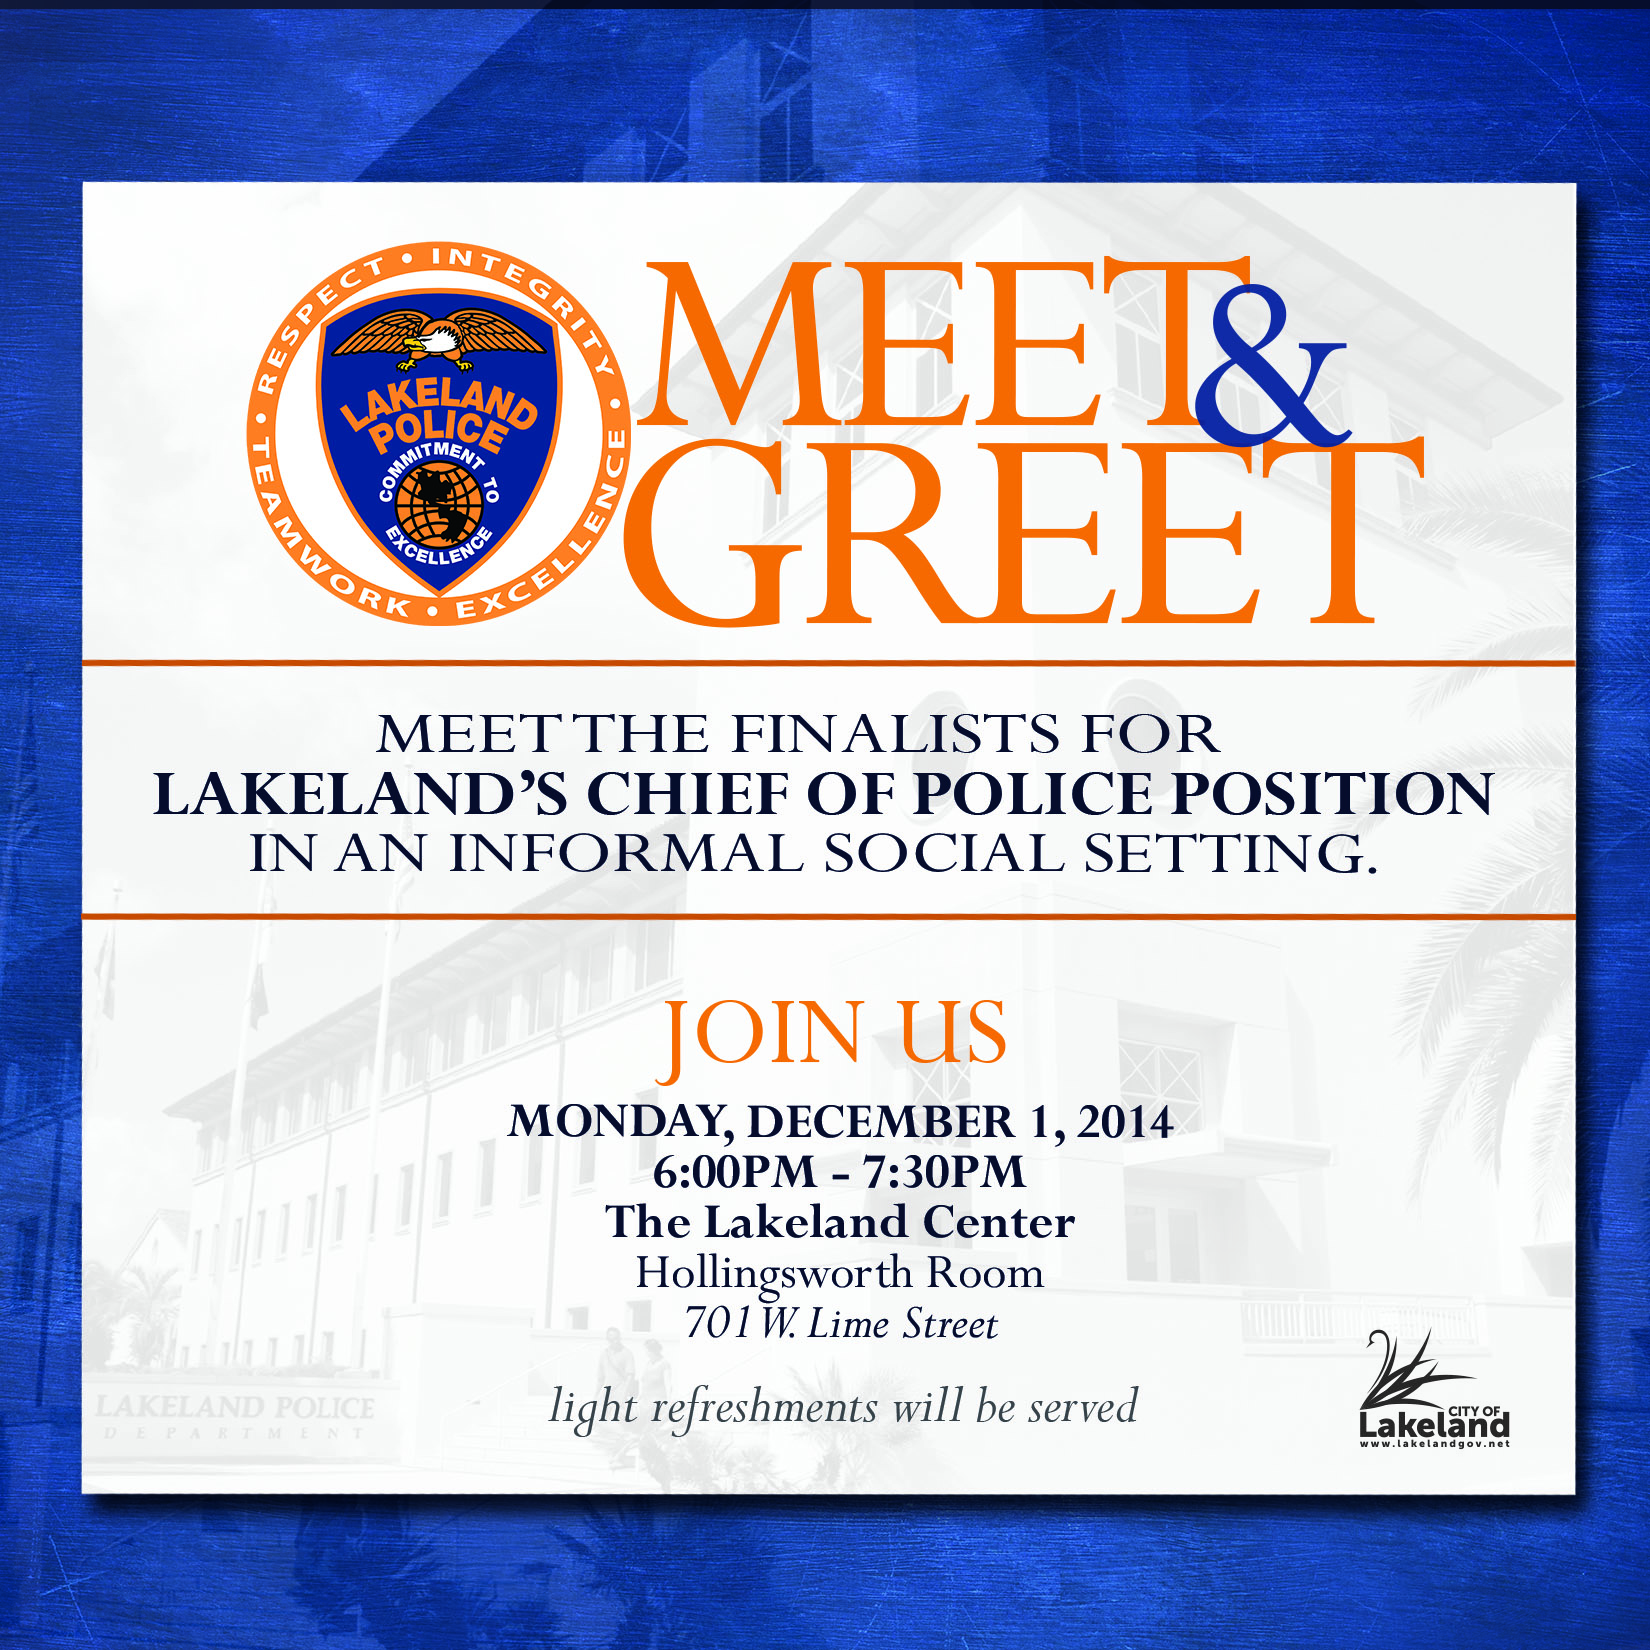 Business Meet And Greet Invitation Wording Fieldstationco LPD Meet And Greet  Invite TLC 12 1 14  Business Meet And Greet Invitation Wording